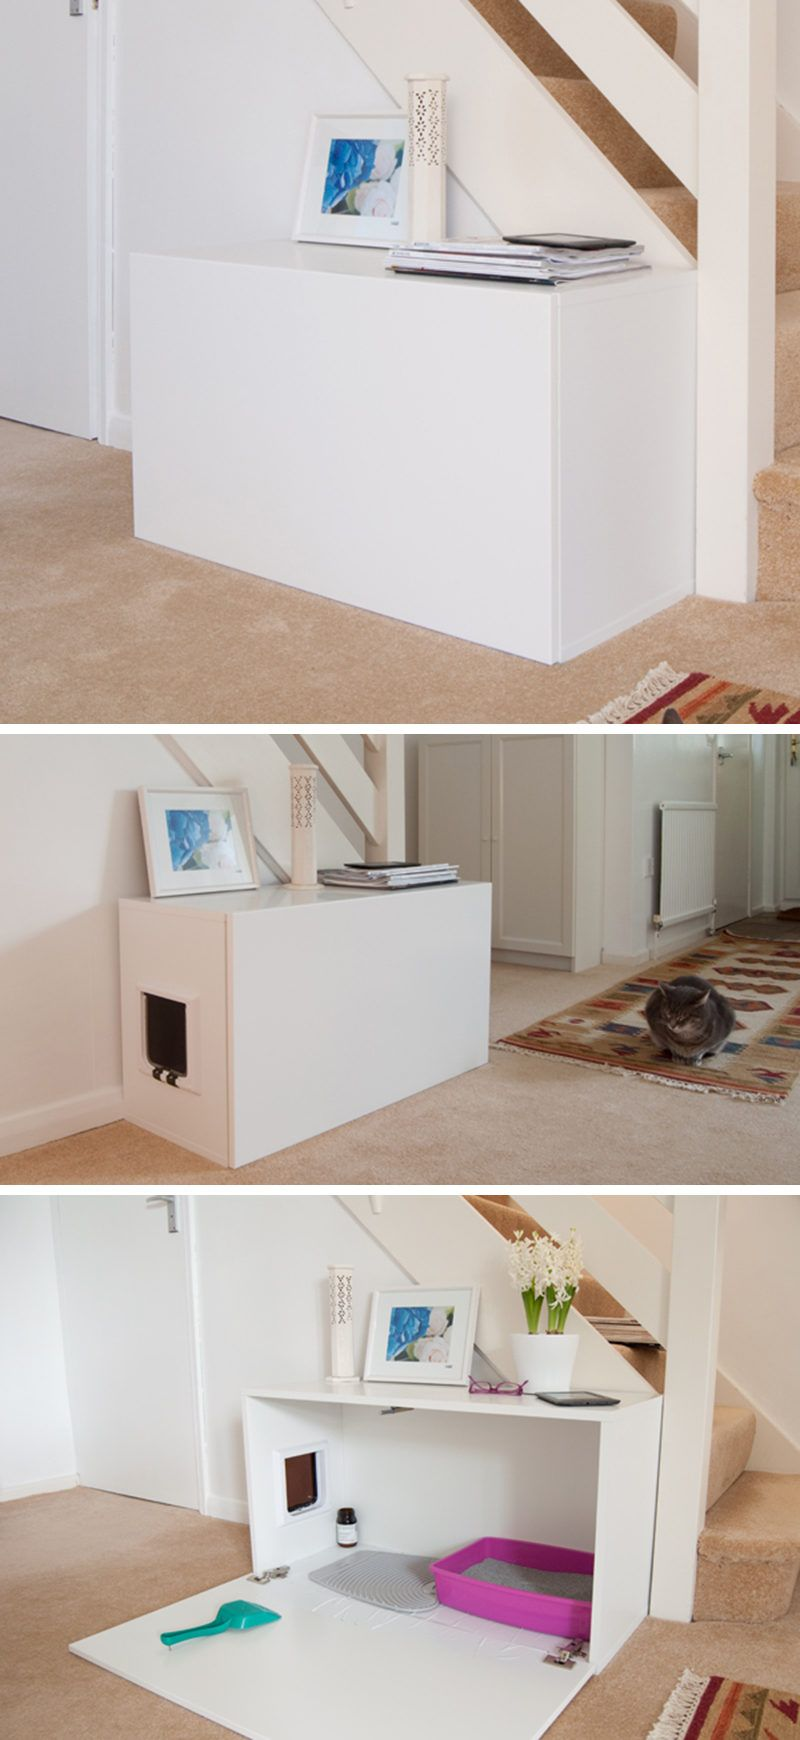 10 Ideas For Hiding Your Cat Litter Box Cat Room Diy Cat Room Cat Litter Box